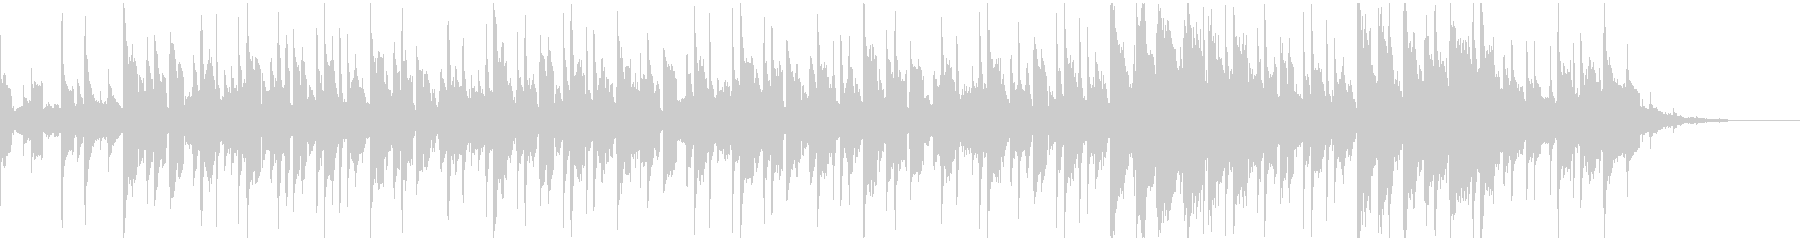 Electronic, mid-t...'s unreproduced waveform